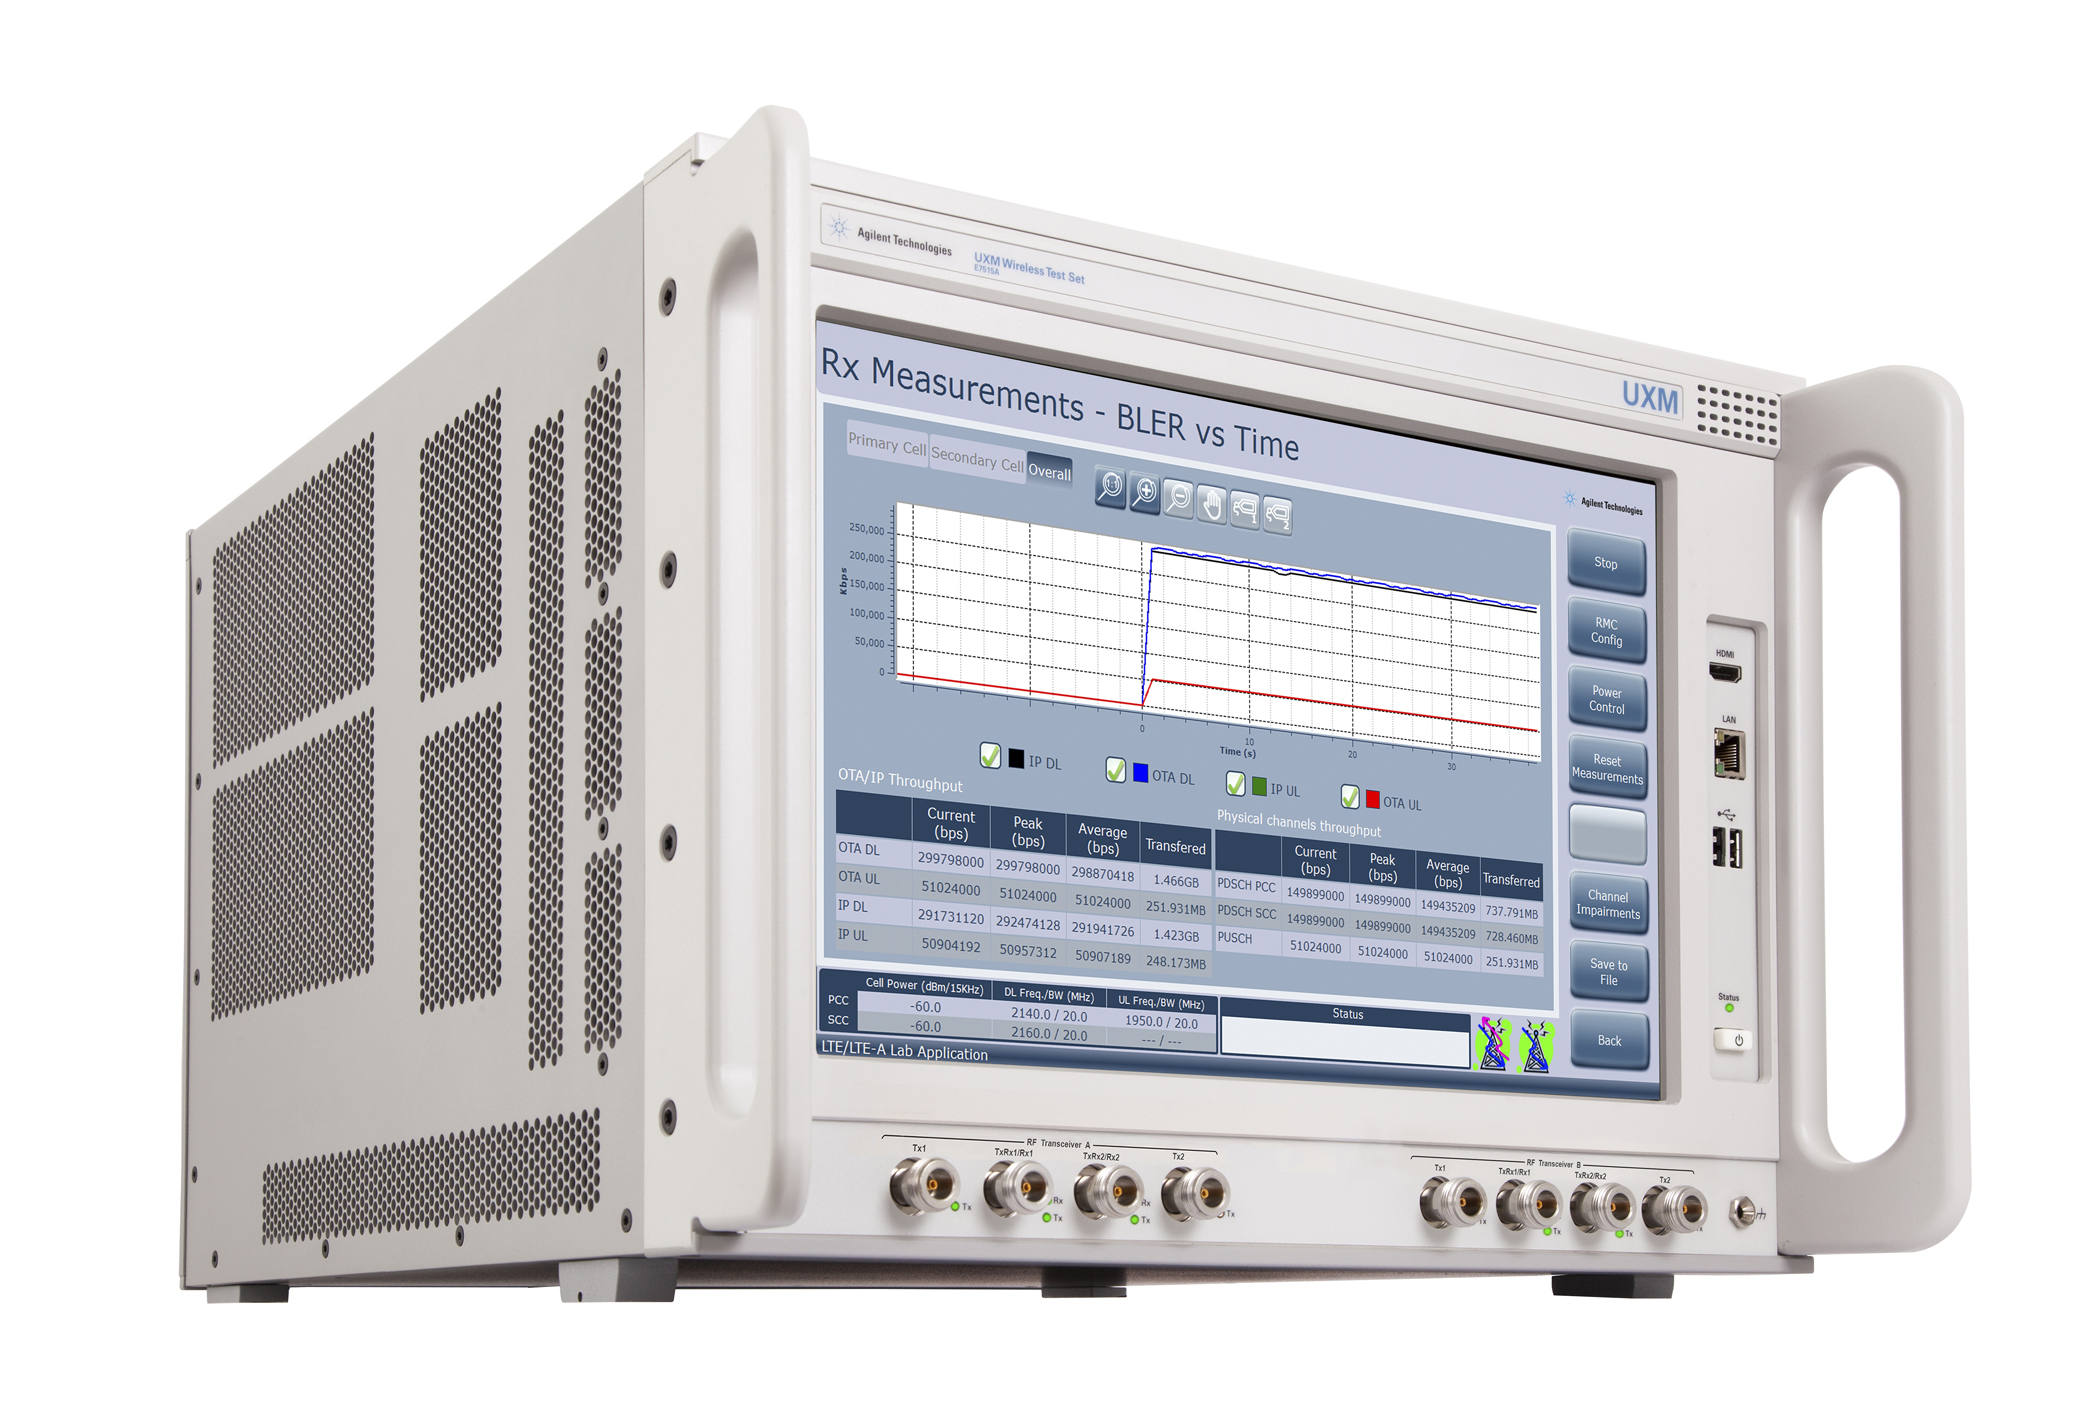 Agilent Technologies UXM Wireless Test Set Enables New Insights into LTE-Advanced Category 6 Chipsets, Devices